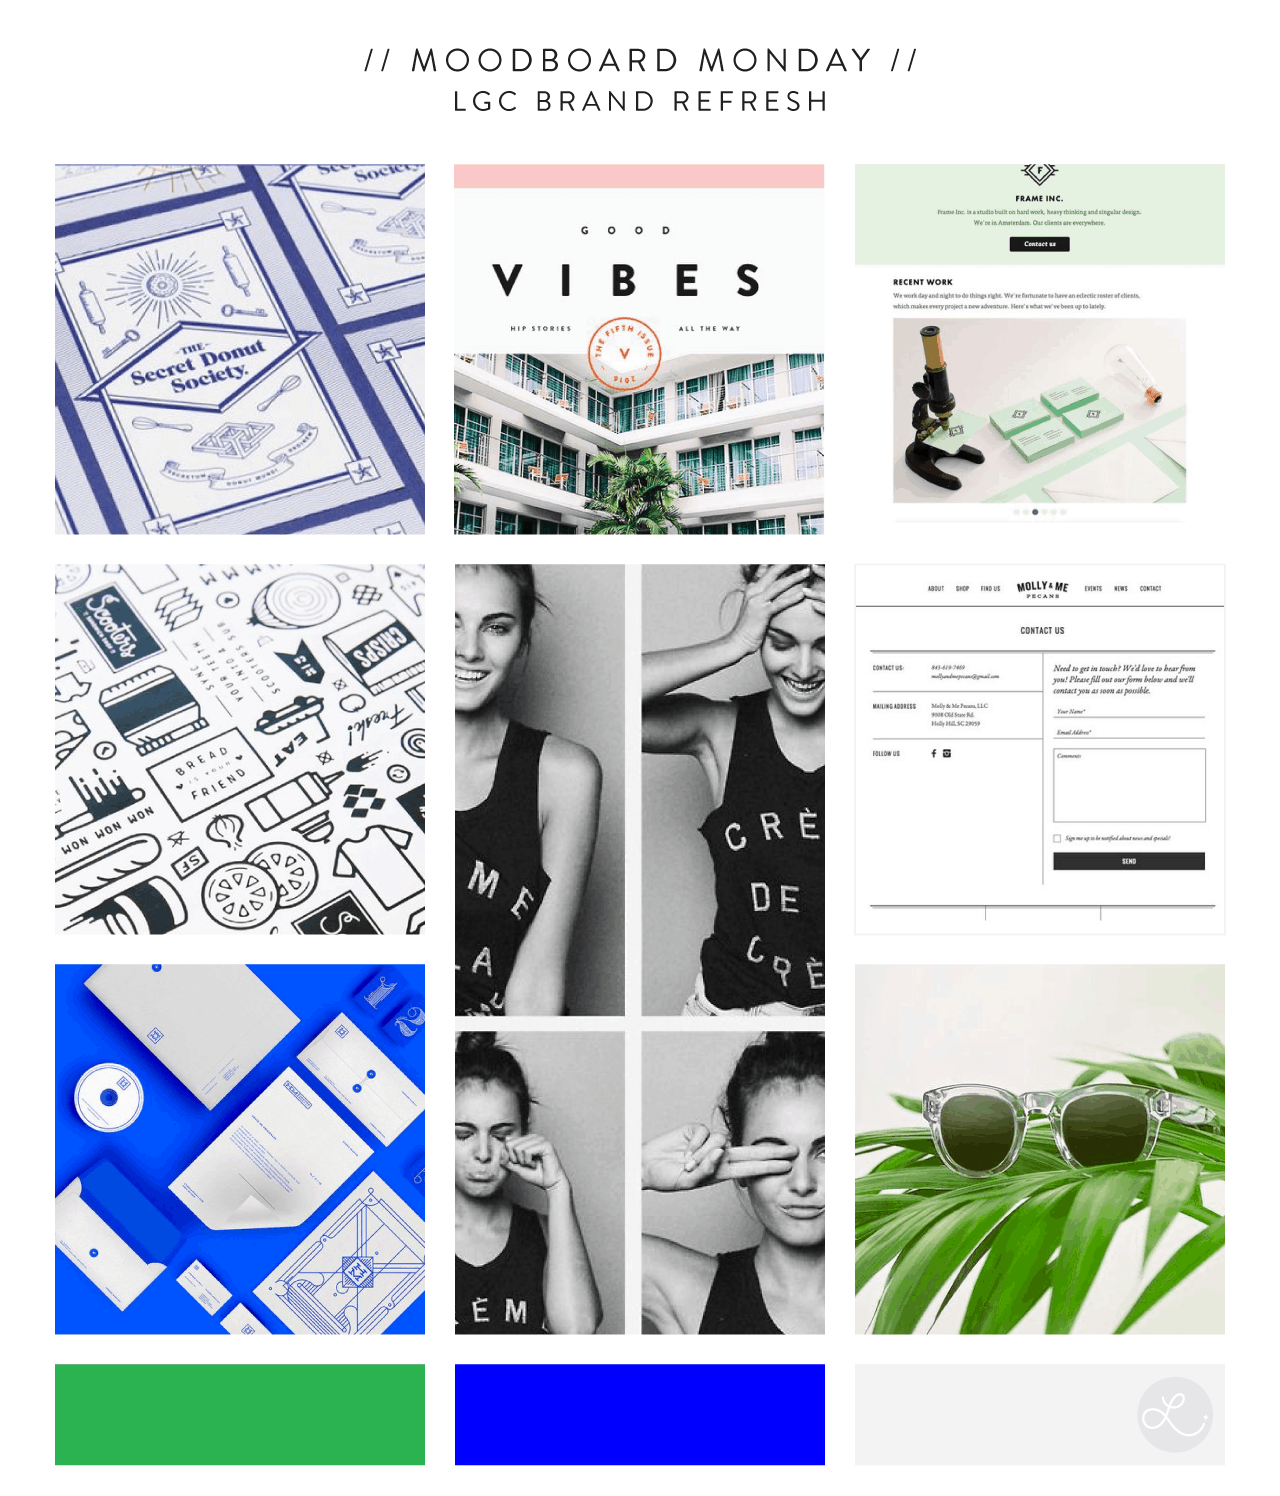 Moodboard Monday: Lindsay Goldner Creative Brand Refresh